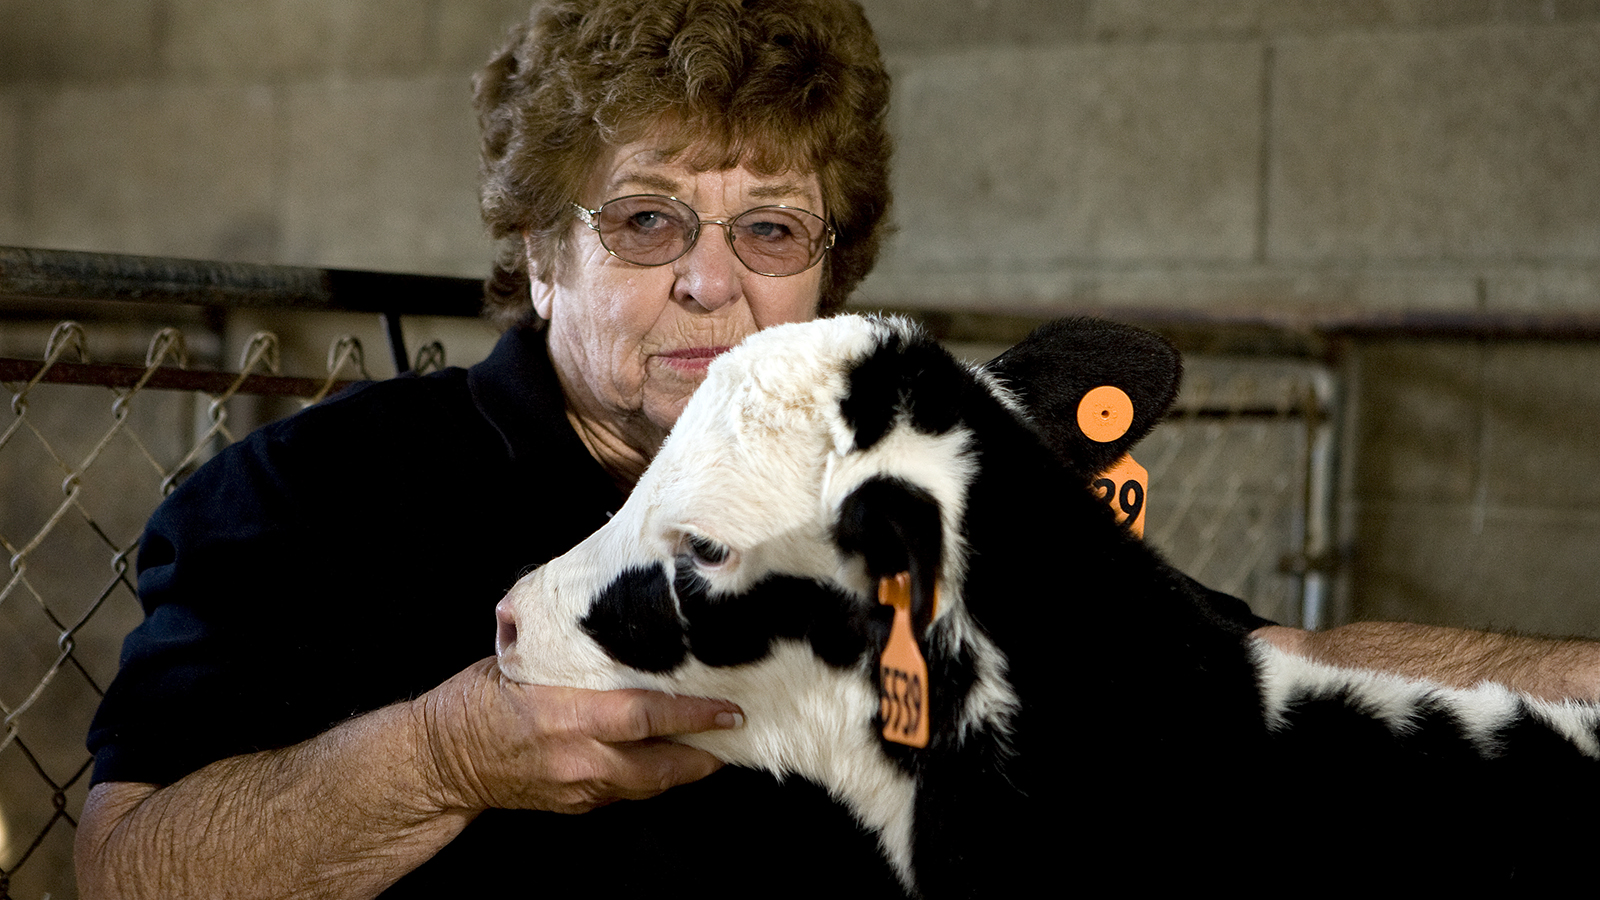 This is also one of the oldest photographs I have from my work in California. This is Mary, a tender-hearted dairy woman out of the Central Valley of California. She was constantly in the nursery of her newborn calves making sure they were healthy and happy. In this photo, she brought up a bucket and just sat down to be with the calves. The calves were just as eager to be near this tender-hearted woman. This is the face of the dairy farmer - wise, experienced, kind, and caring.